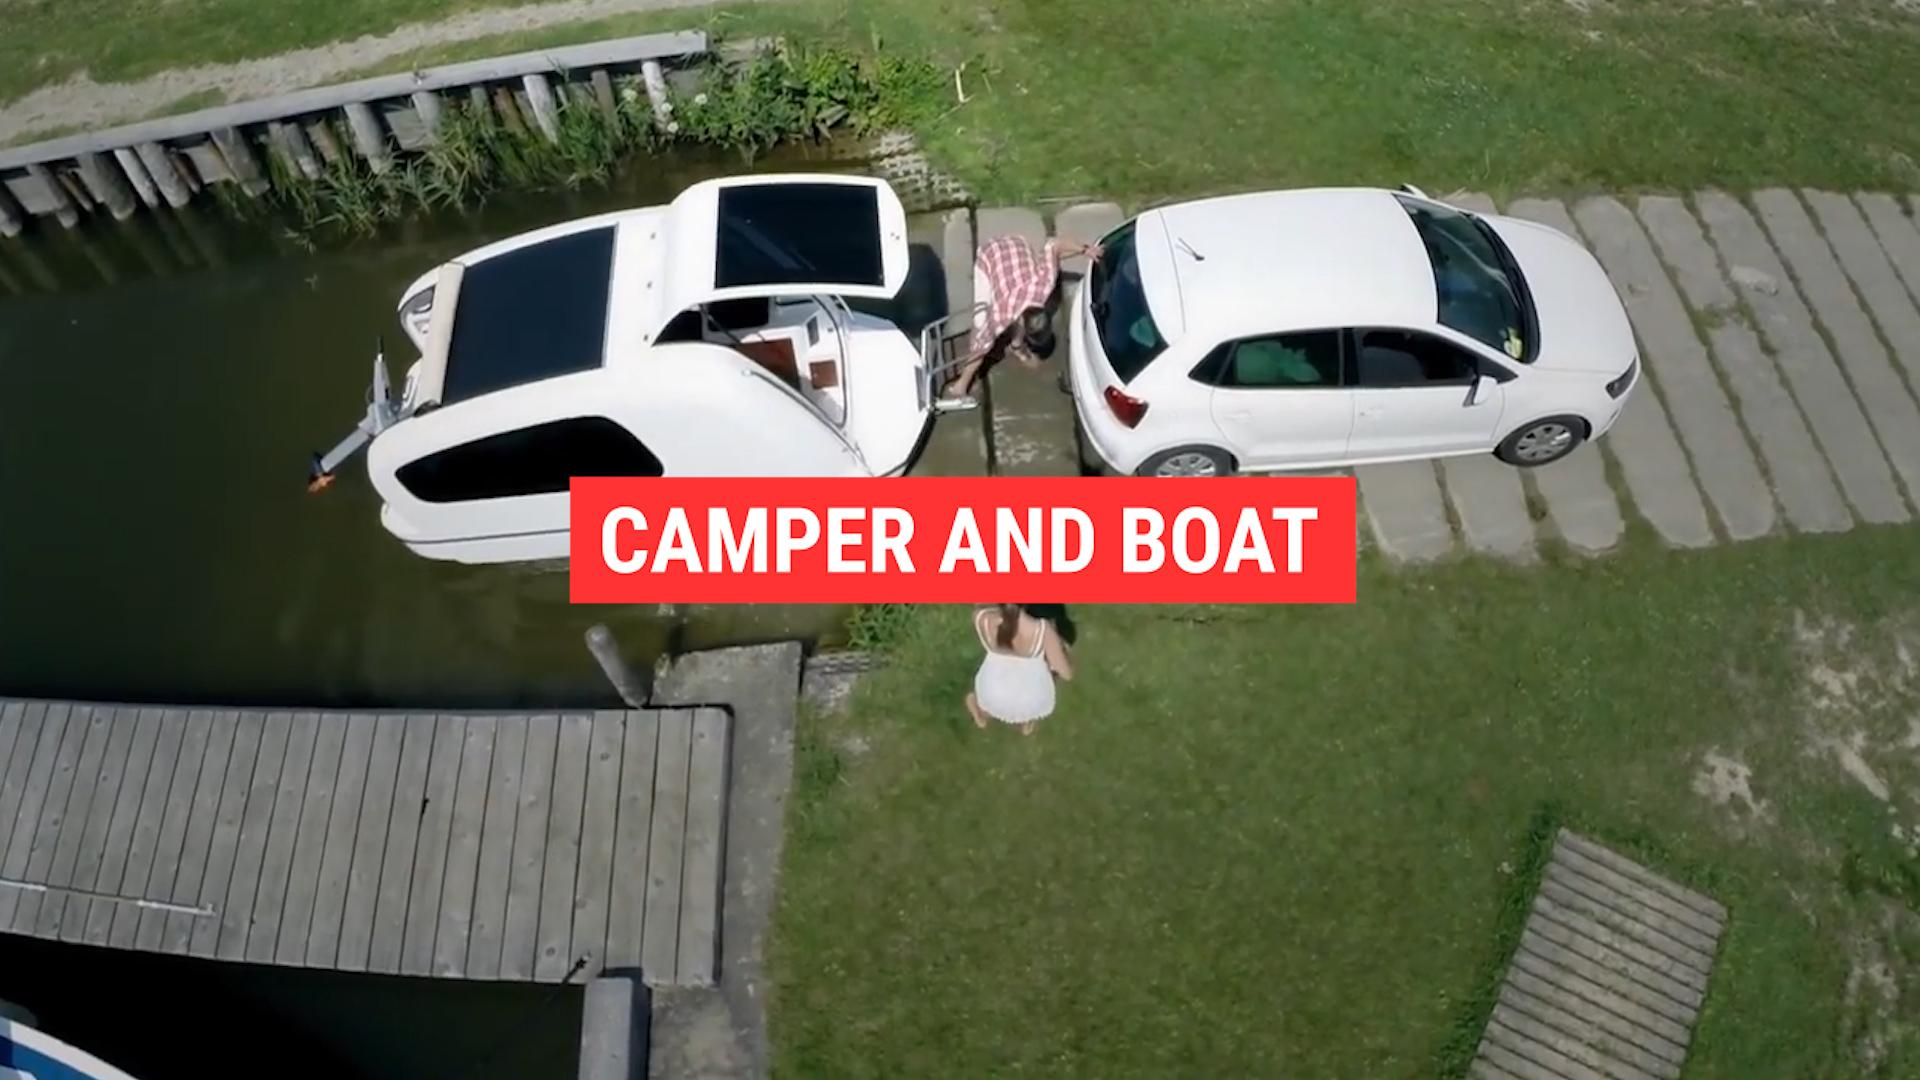 The Sealander is a camper that's also a boat